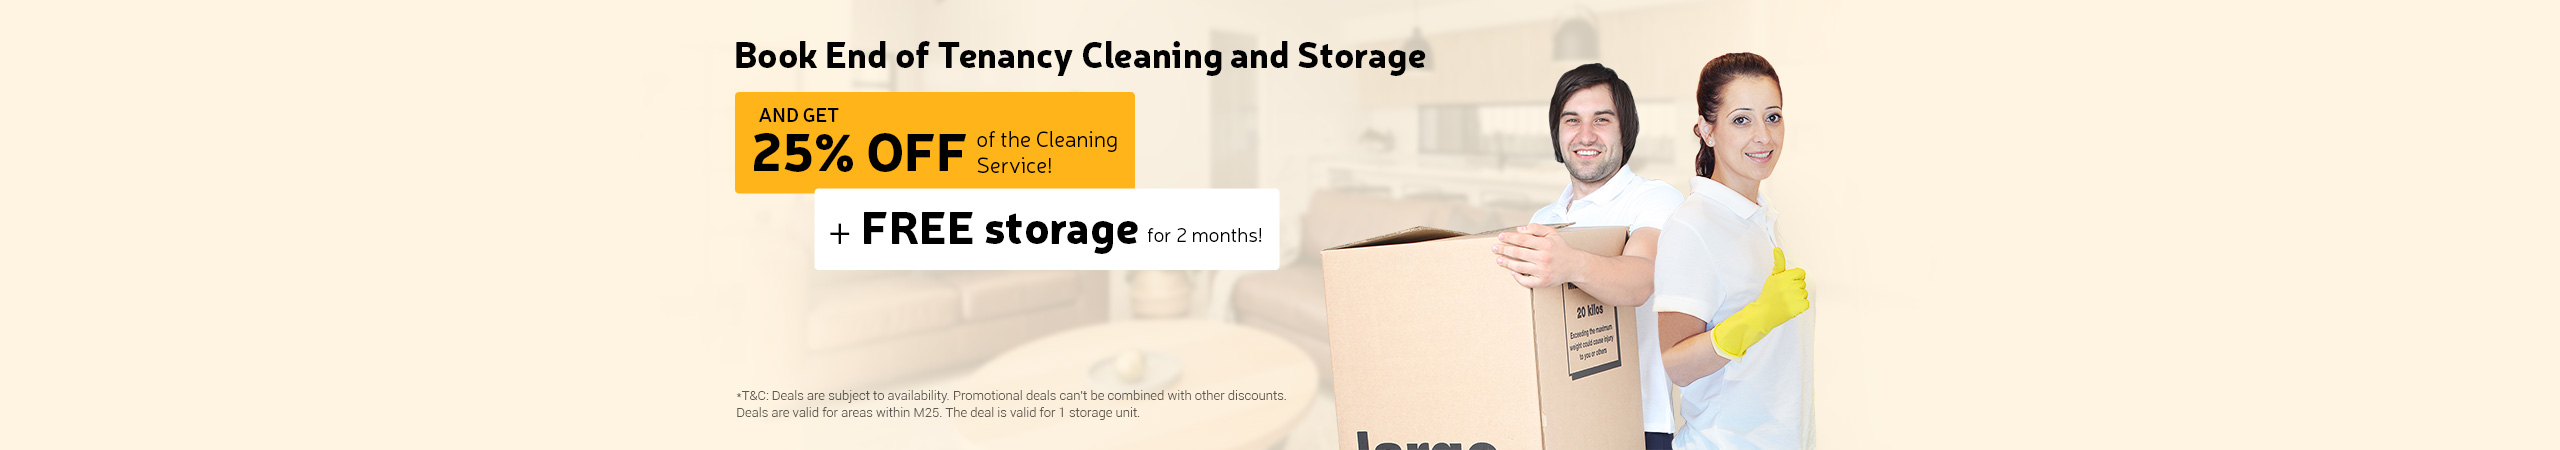 Book End of Tenancy Cleaning and Storage